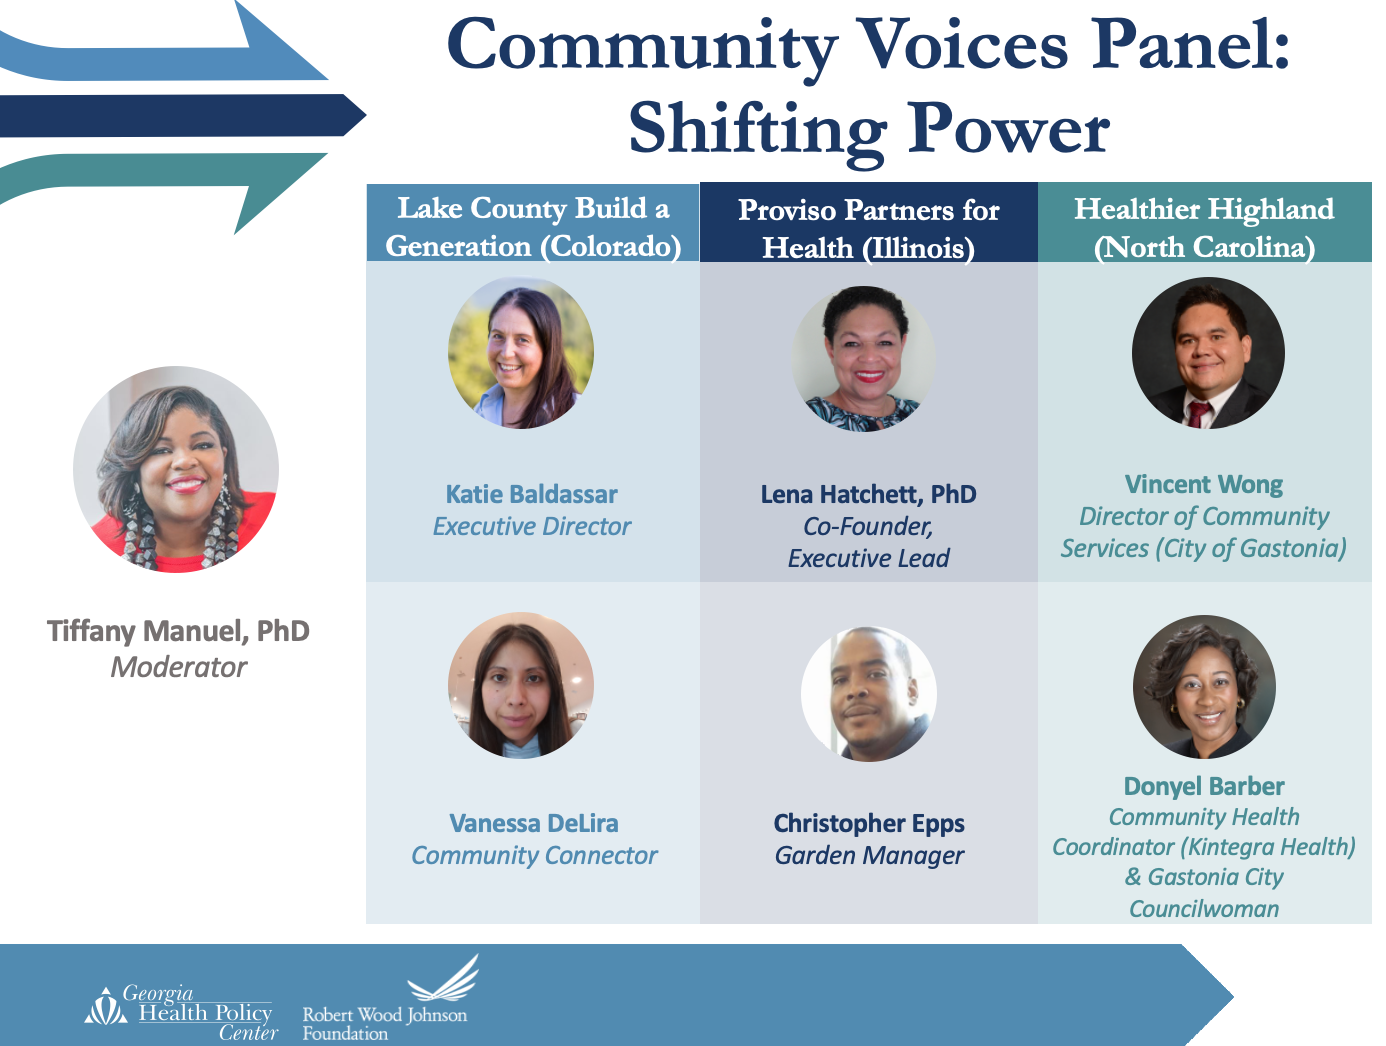 Community Voices Panel: Shifting Power